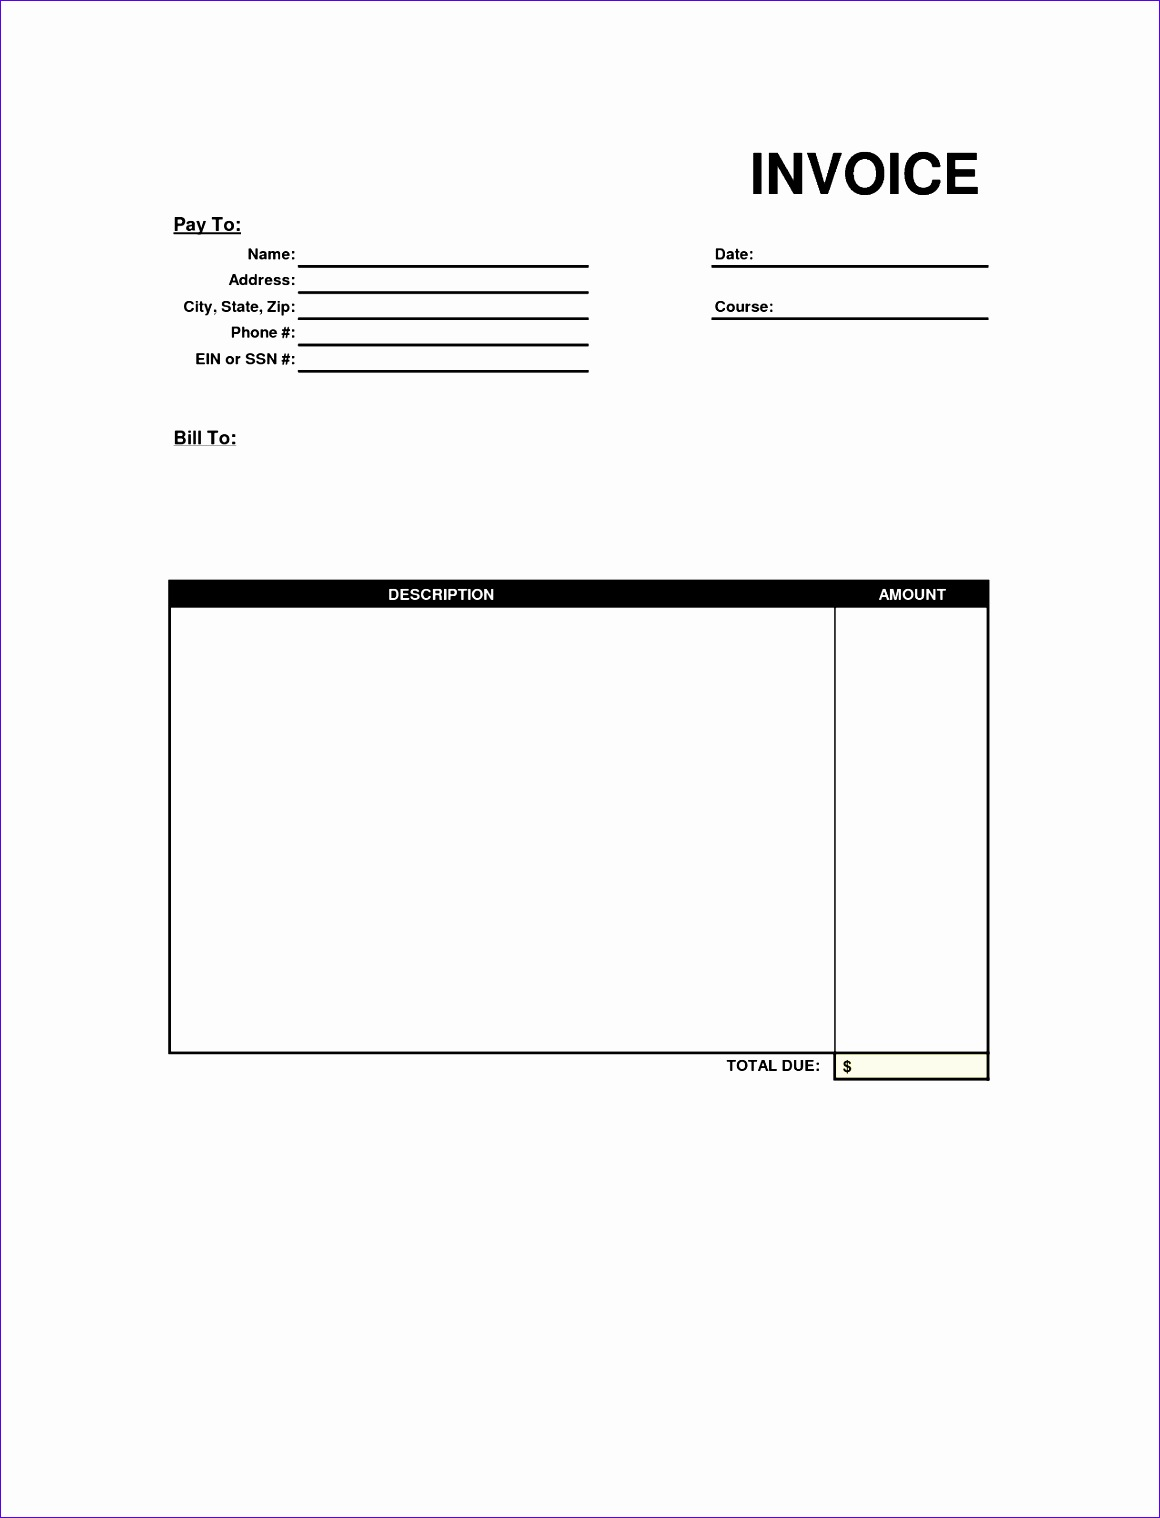 free invoice format excel word pdf templates 11601518